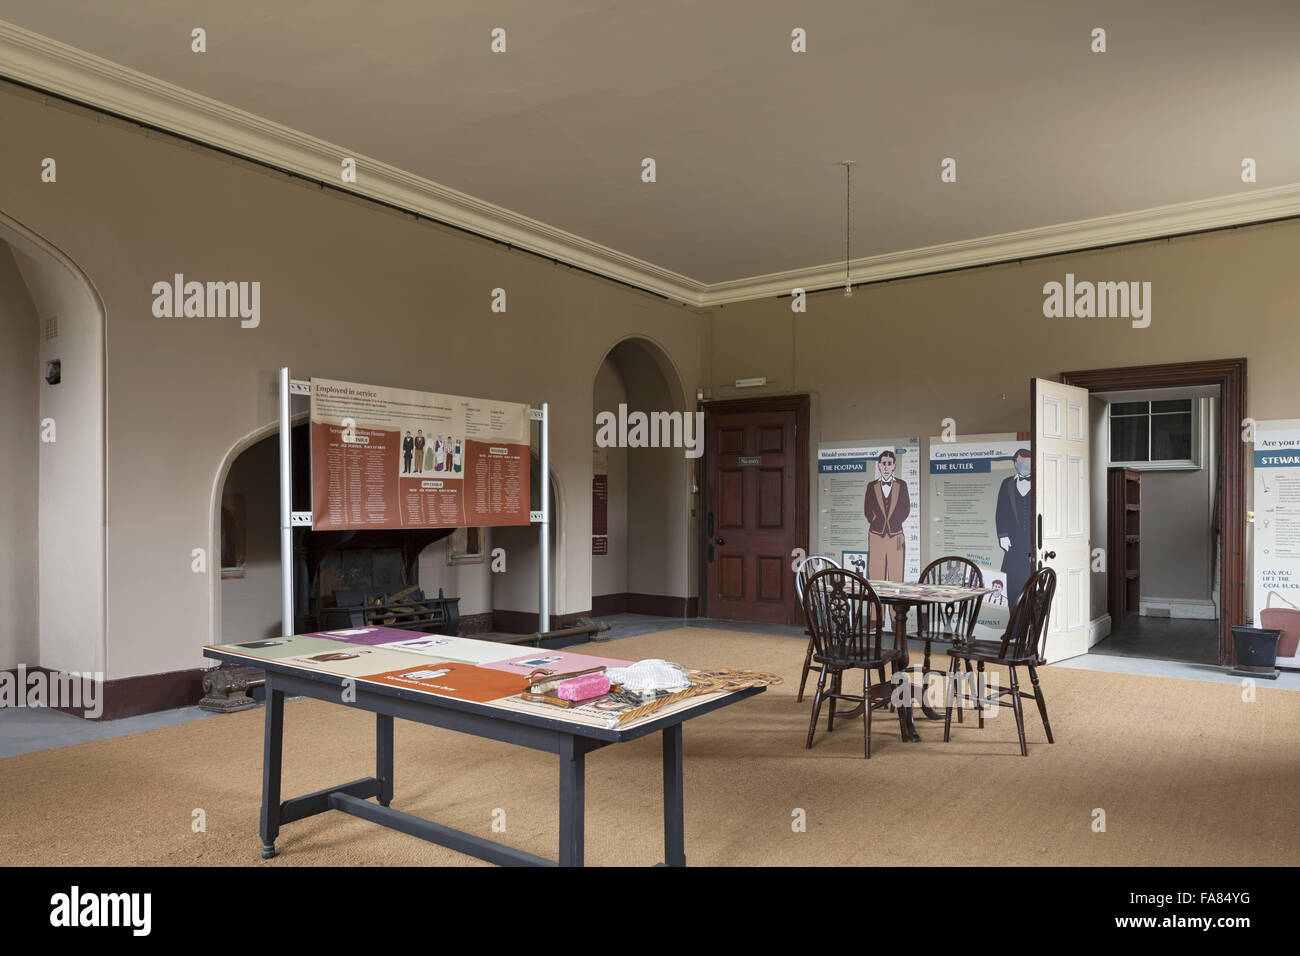 Exhibition and interpretation panels in the Billiard Room at Belton House, Lincolnshire. - Stock Image